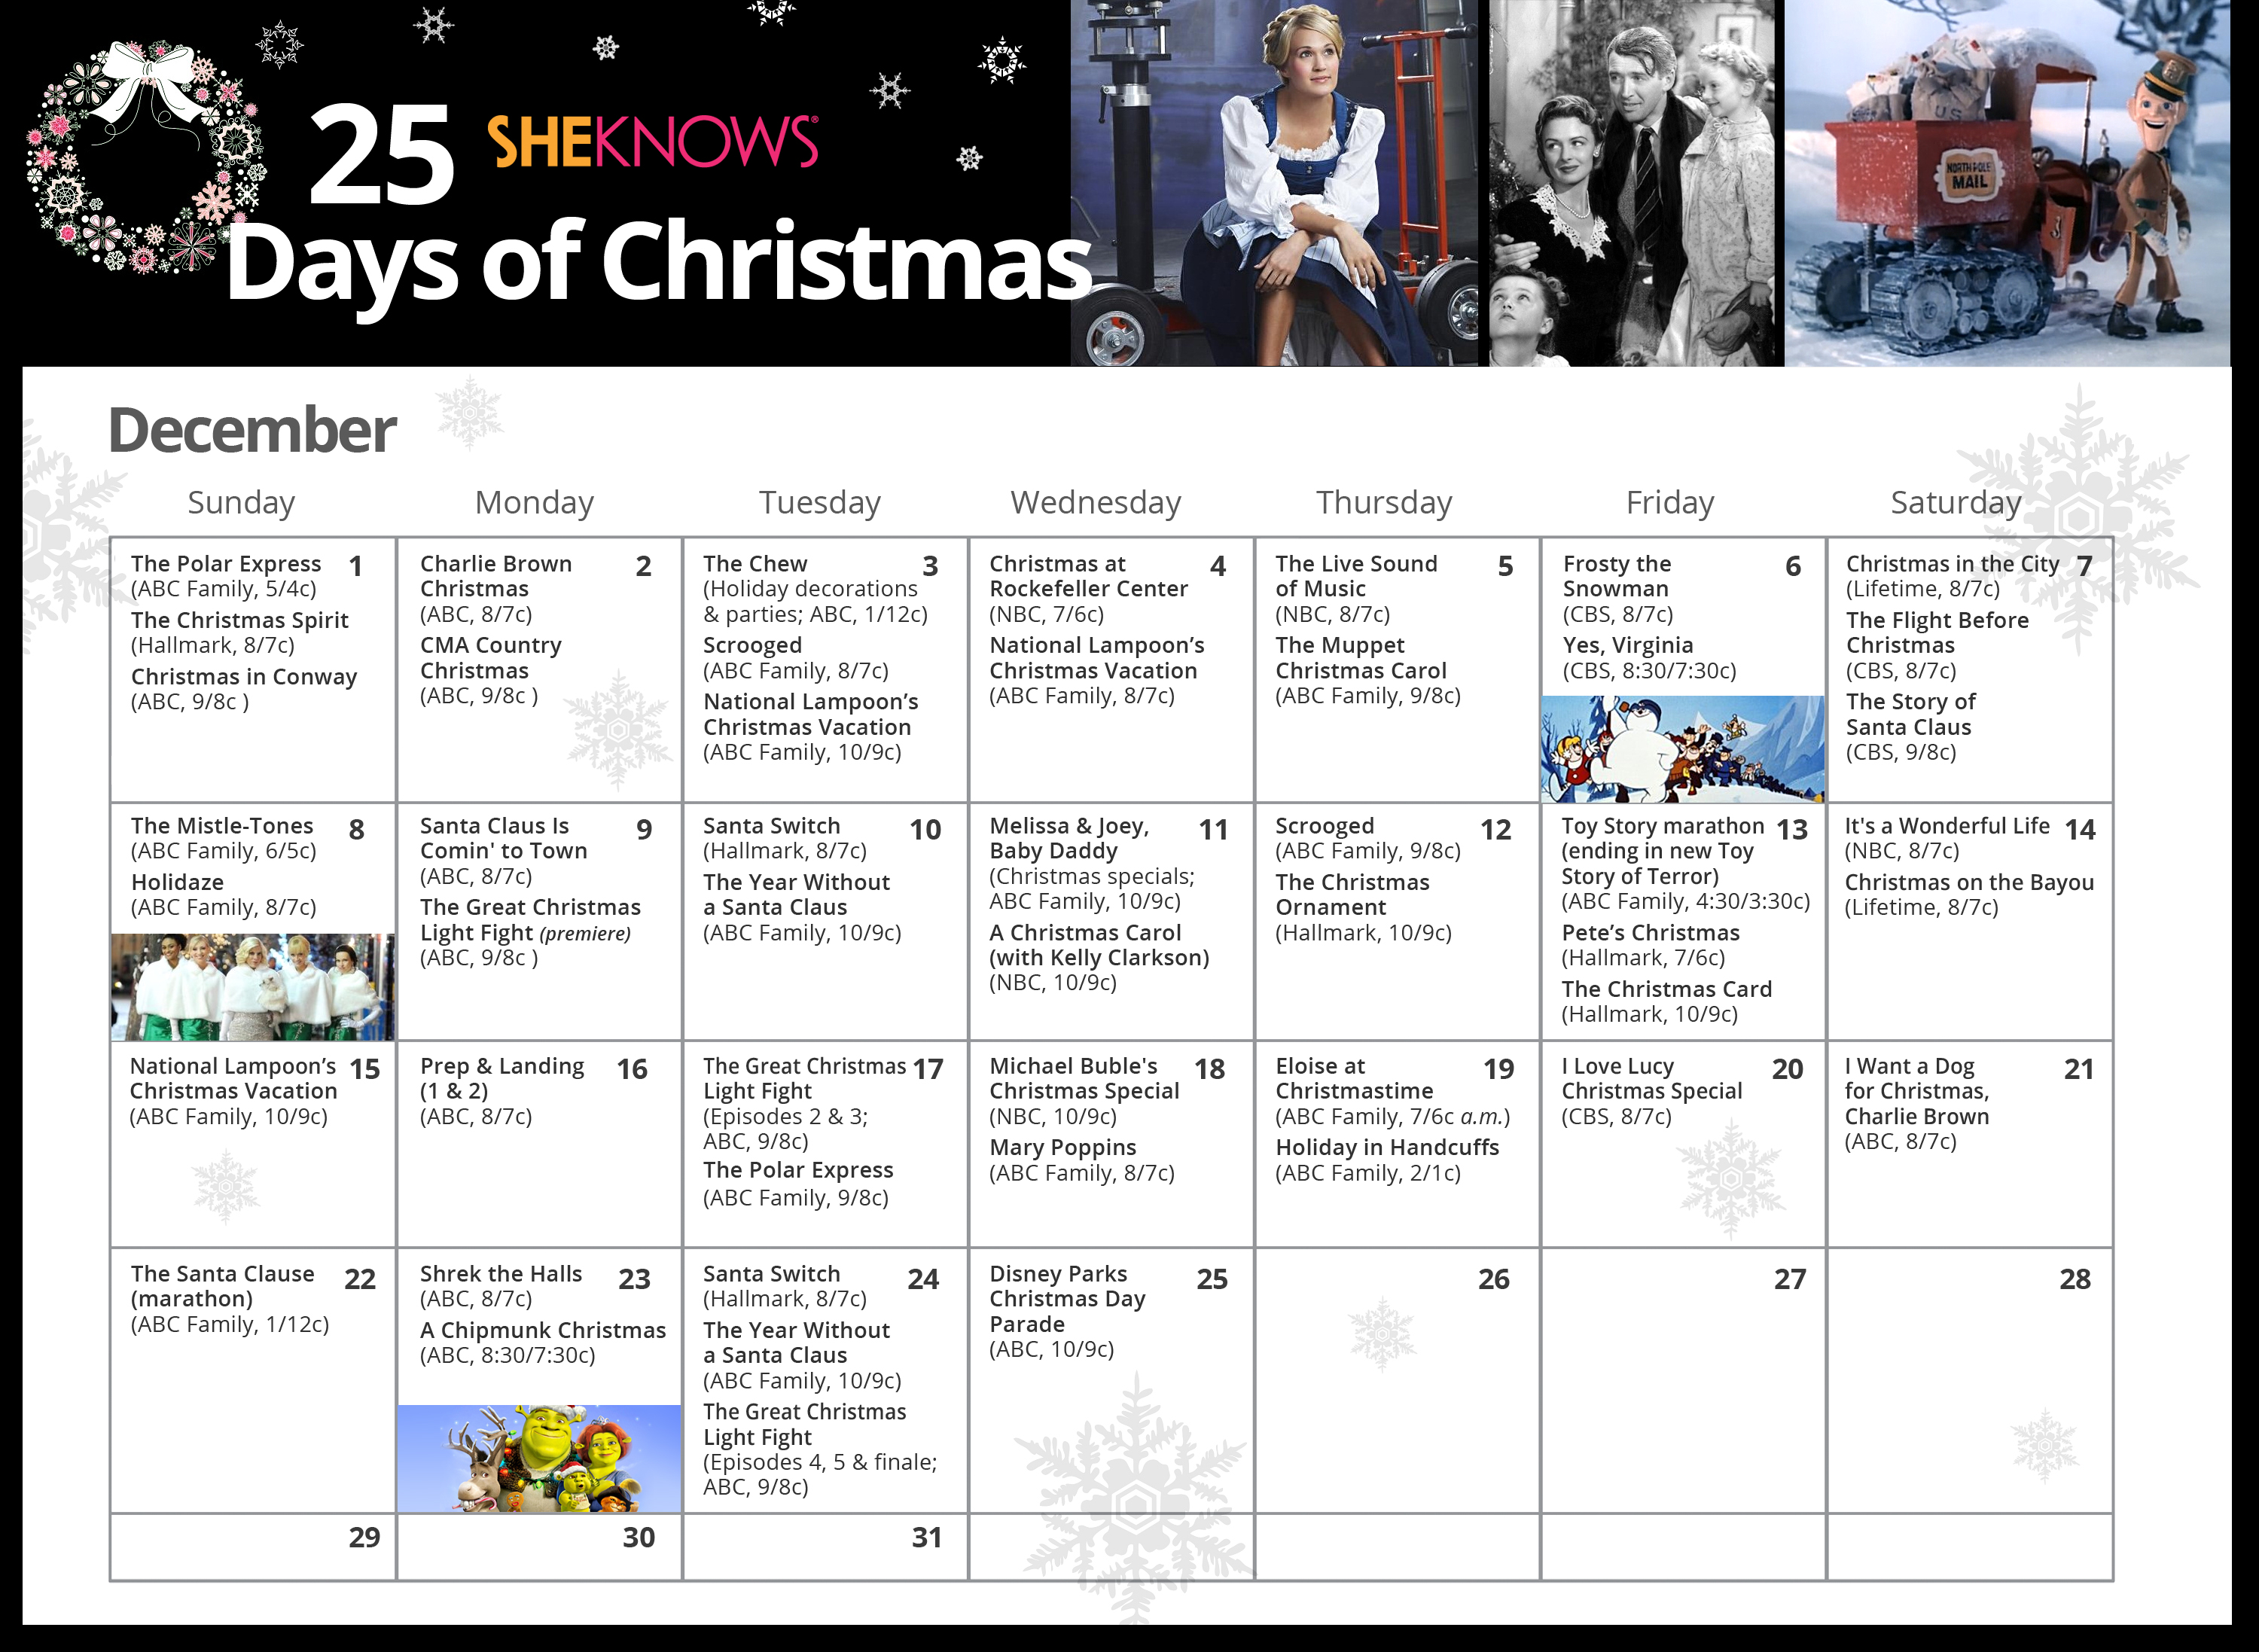 SheKnows presents the 25 Days of Christmas TV calendar